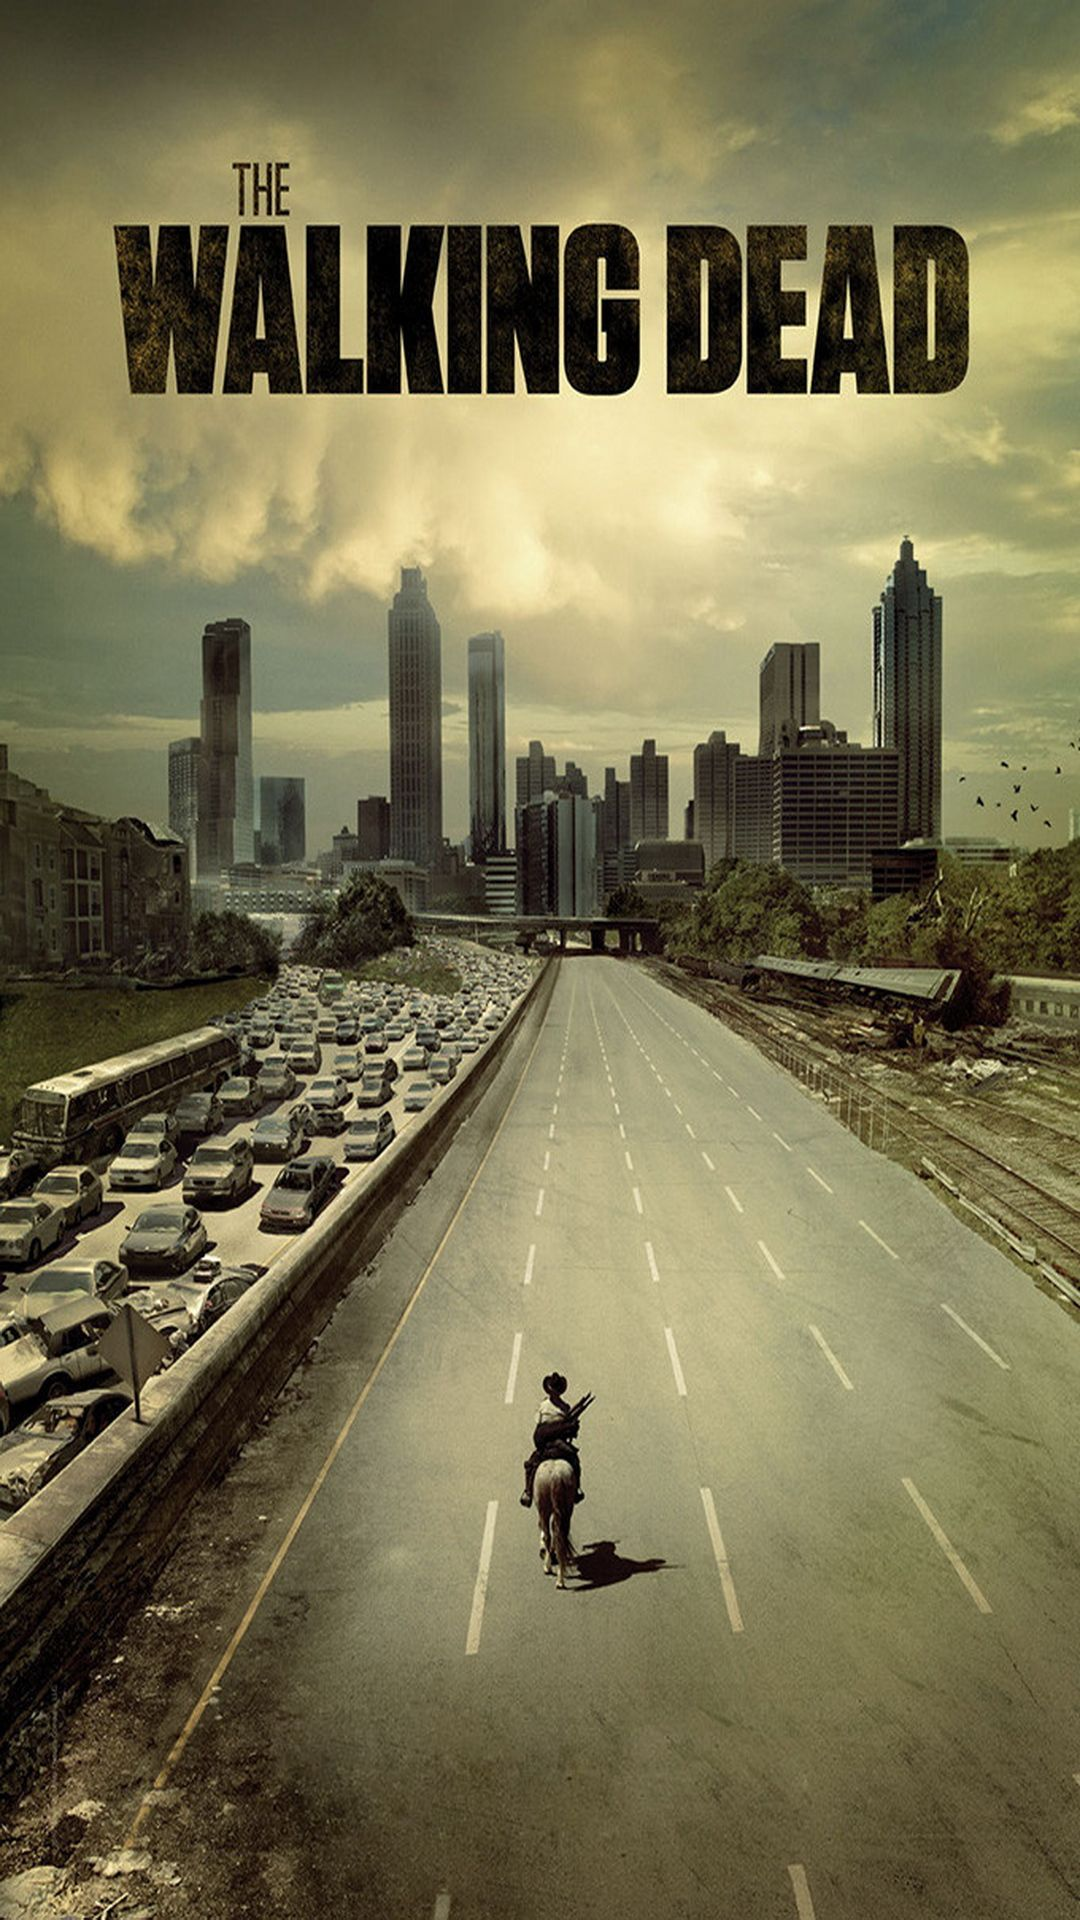 ↑↑TAP AND GET THE FREE APP! Movies The Walking Dead Rick Grimes Yellow Series Poster Zombies Horror Action AMC City Skyline Road Highway HD iPhone 6 plus Wallpaper